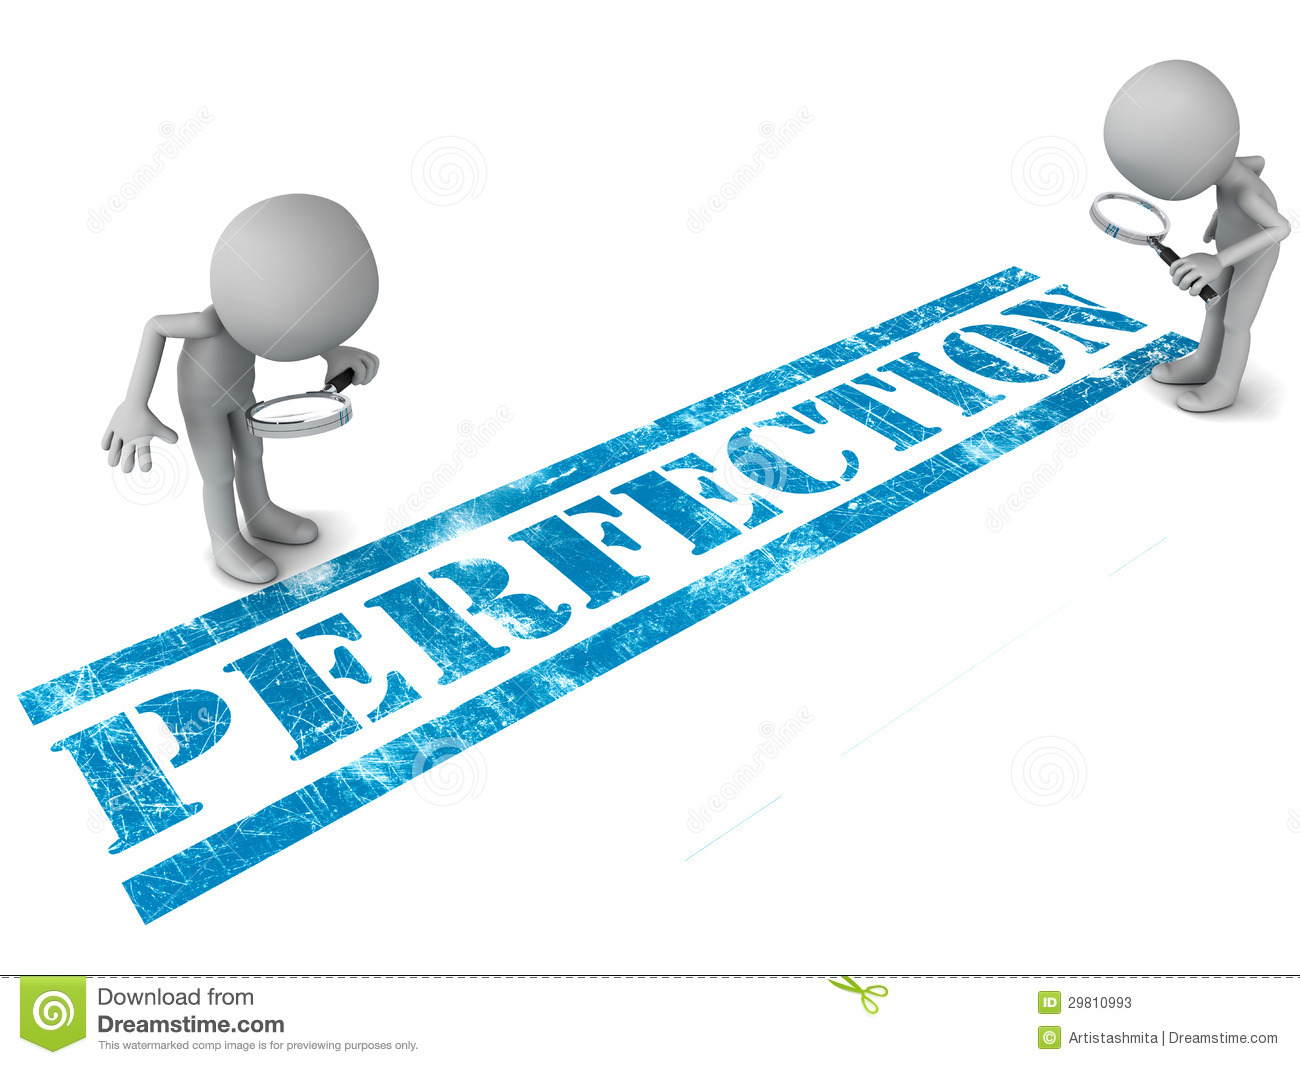 Perfection clipart #17, Download drawings